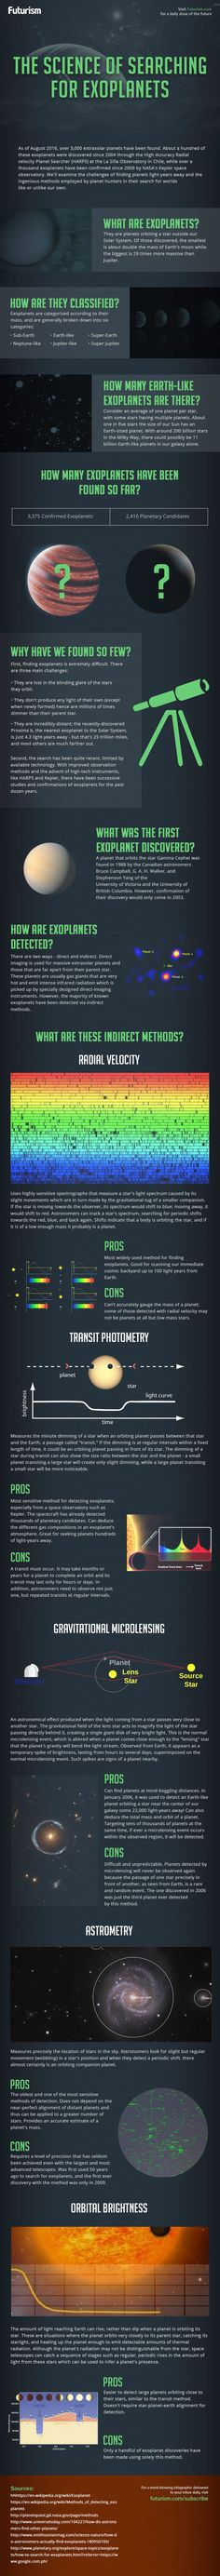 The Science of Searching for Exoplanets [INFOGRAPHIC]